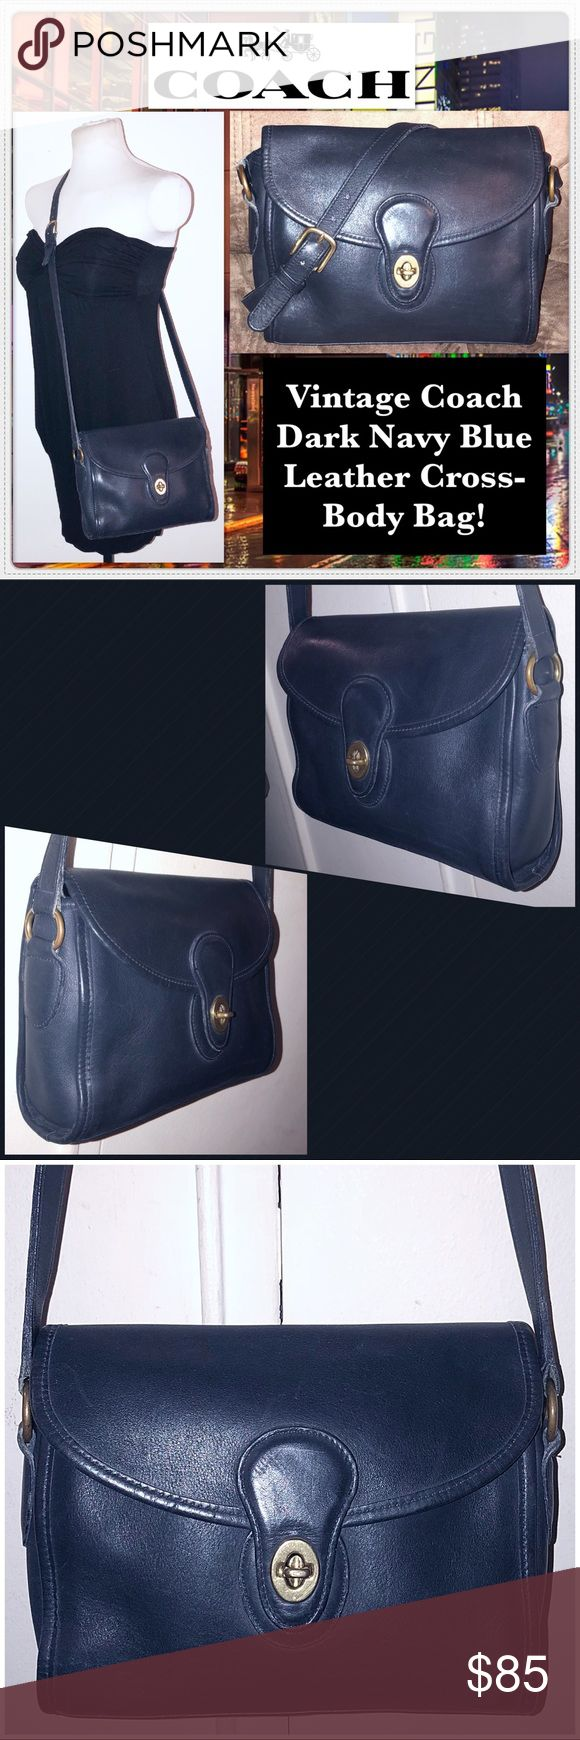 "Vintage Coach Dk Navy Blue Leather Cross-Body Bag! Vintage Coach Dark Navy Blue Leather Cross-Body Bag! Features: 100% authentic, Original & Classic Coach bag, Dark Navy Blue color, Glove-Tanned leather, Made in USA, Gold tone hardware, front pocket w/ twist closure, one zip pocket & adjustable strap. Coach creed & registration no. on inside. Measures approx. 7""H x 2.5""D x 9""L with up to a 23"" clearance. No Coach hang tag. No rips, tears or damage. Very minor ext marks. VG condition! Offers…"